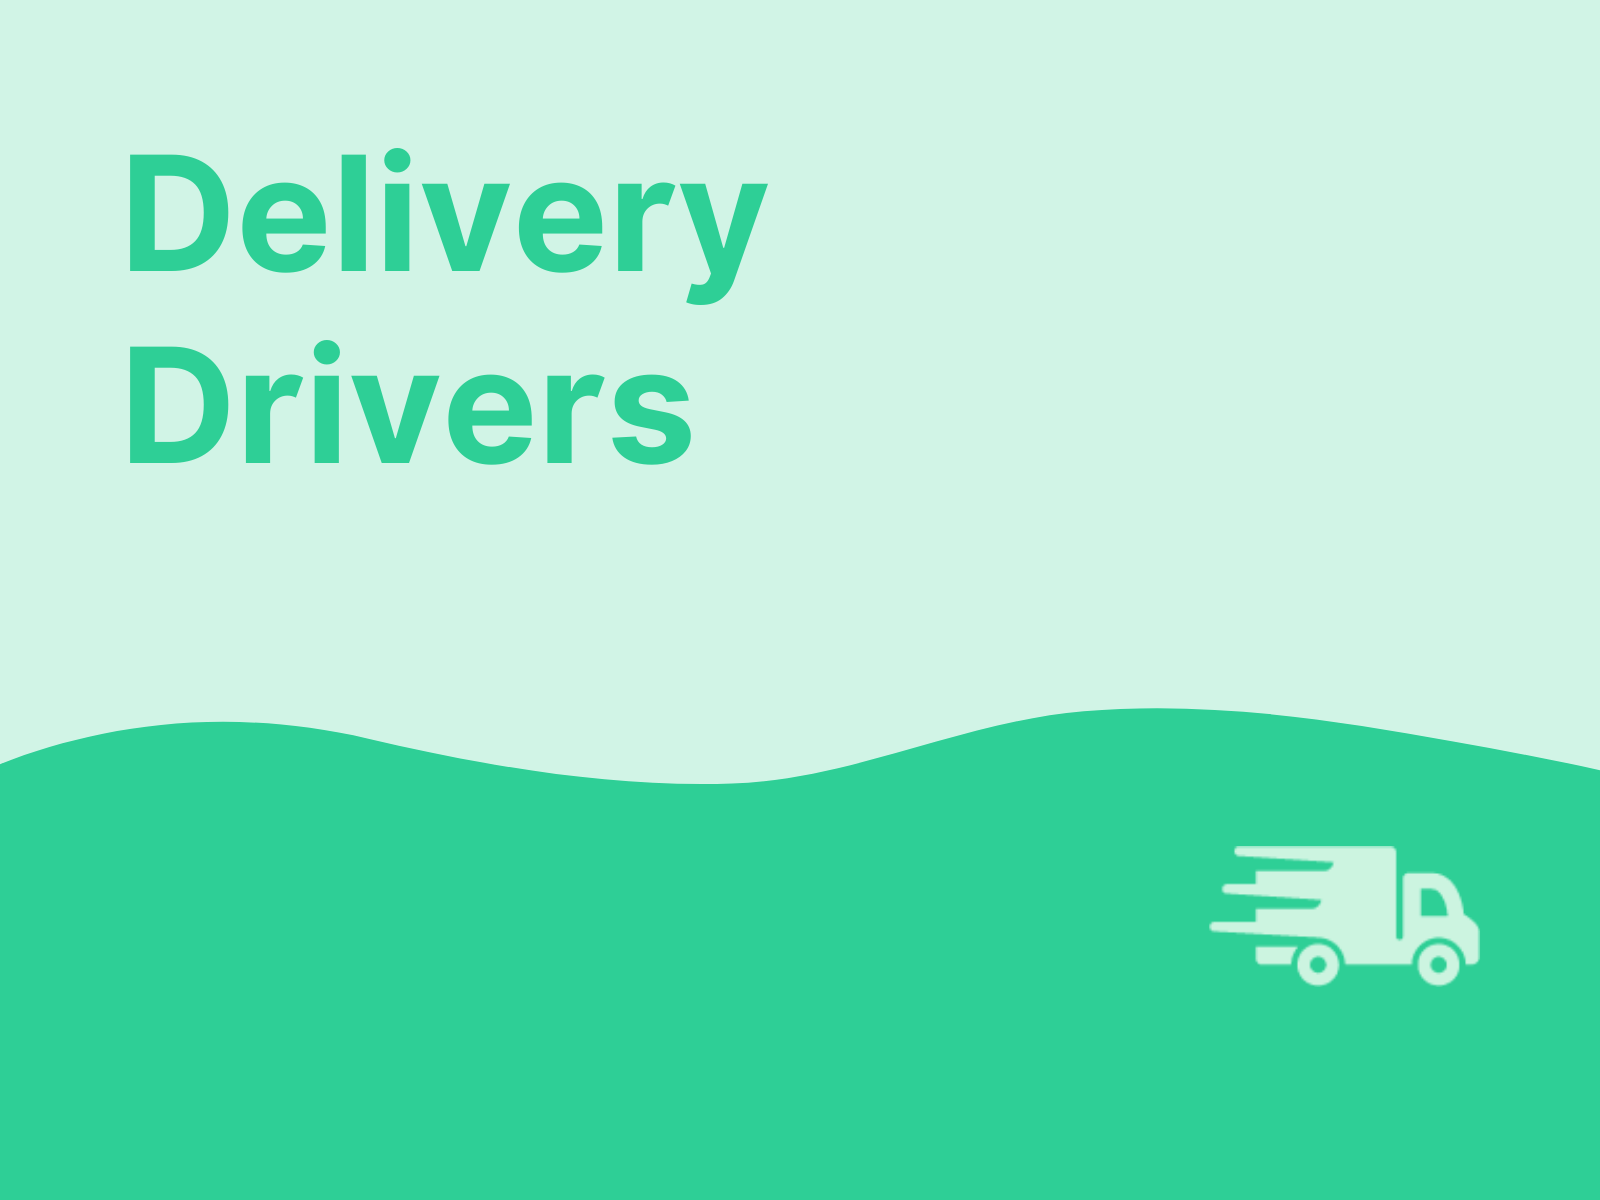 Delivery Drivers-4